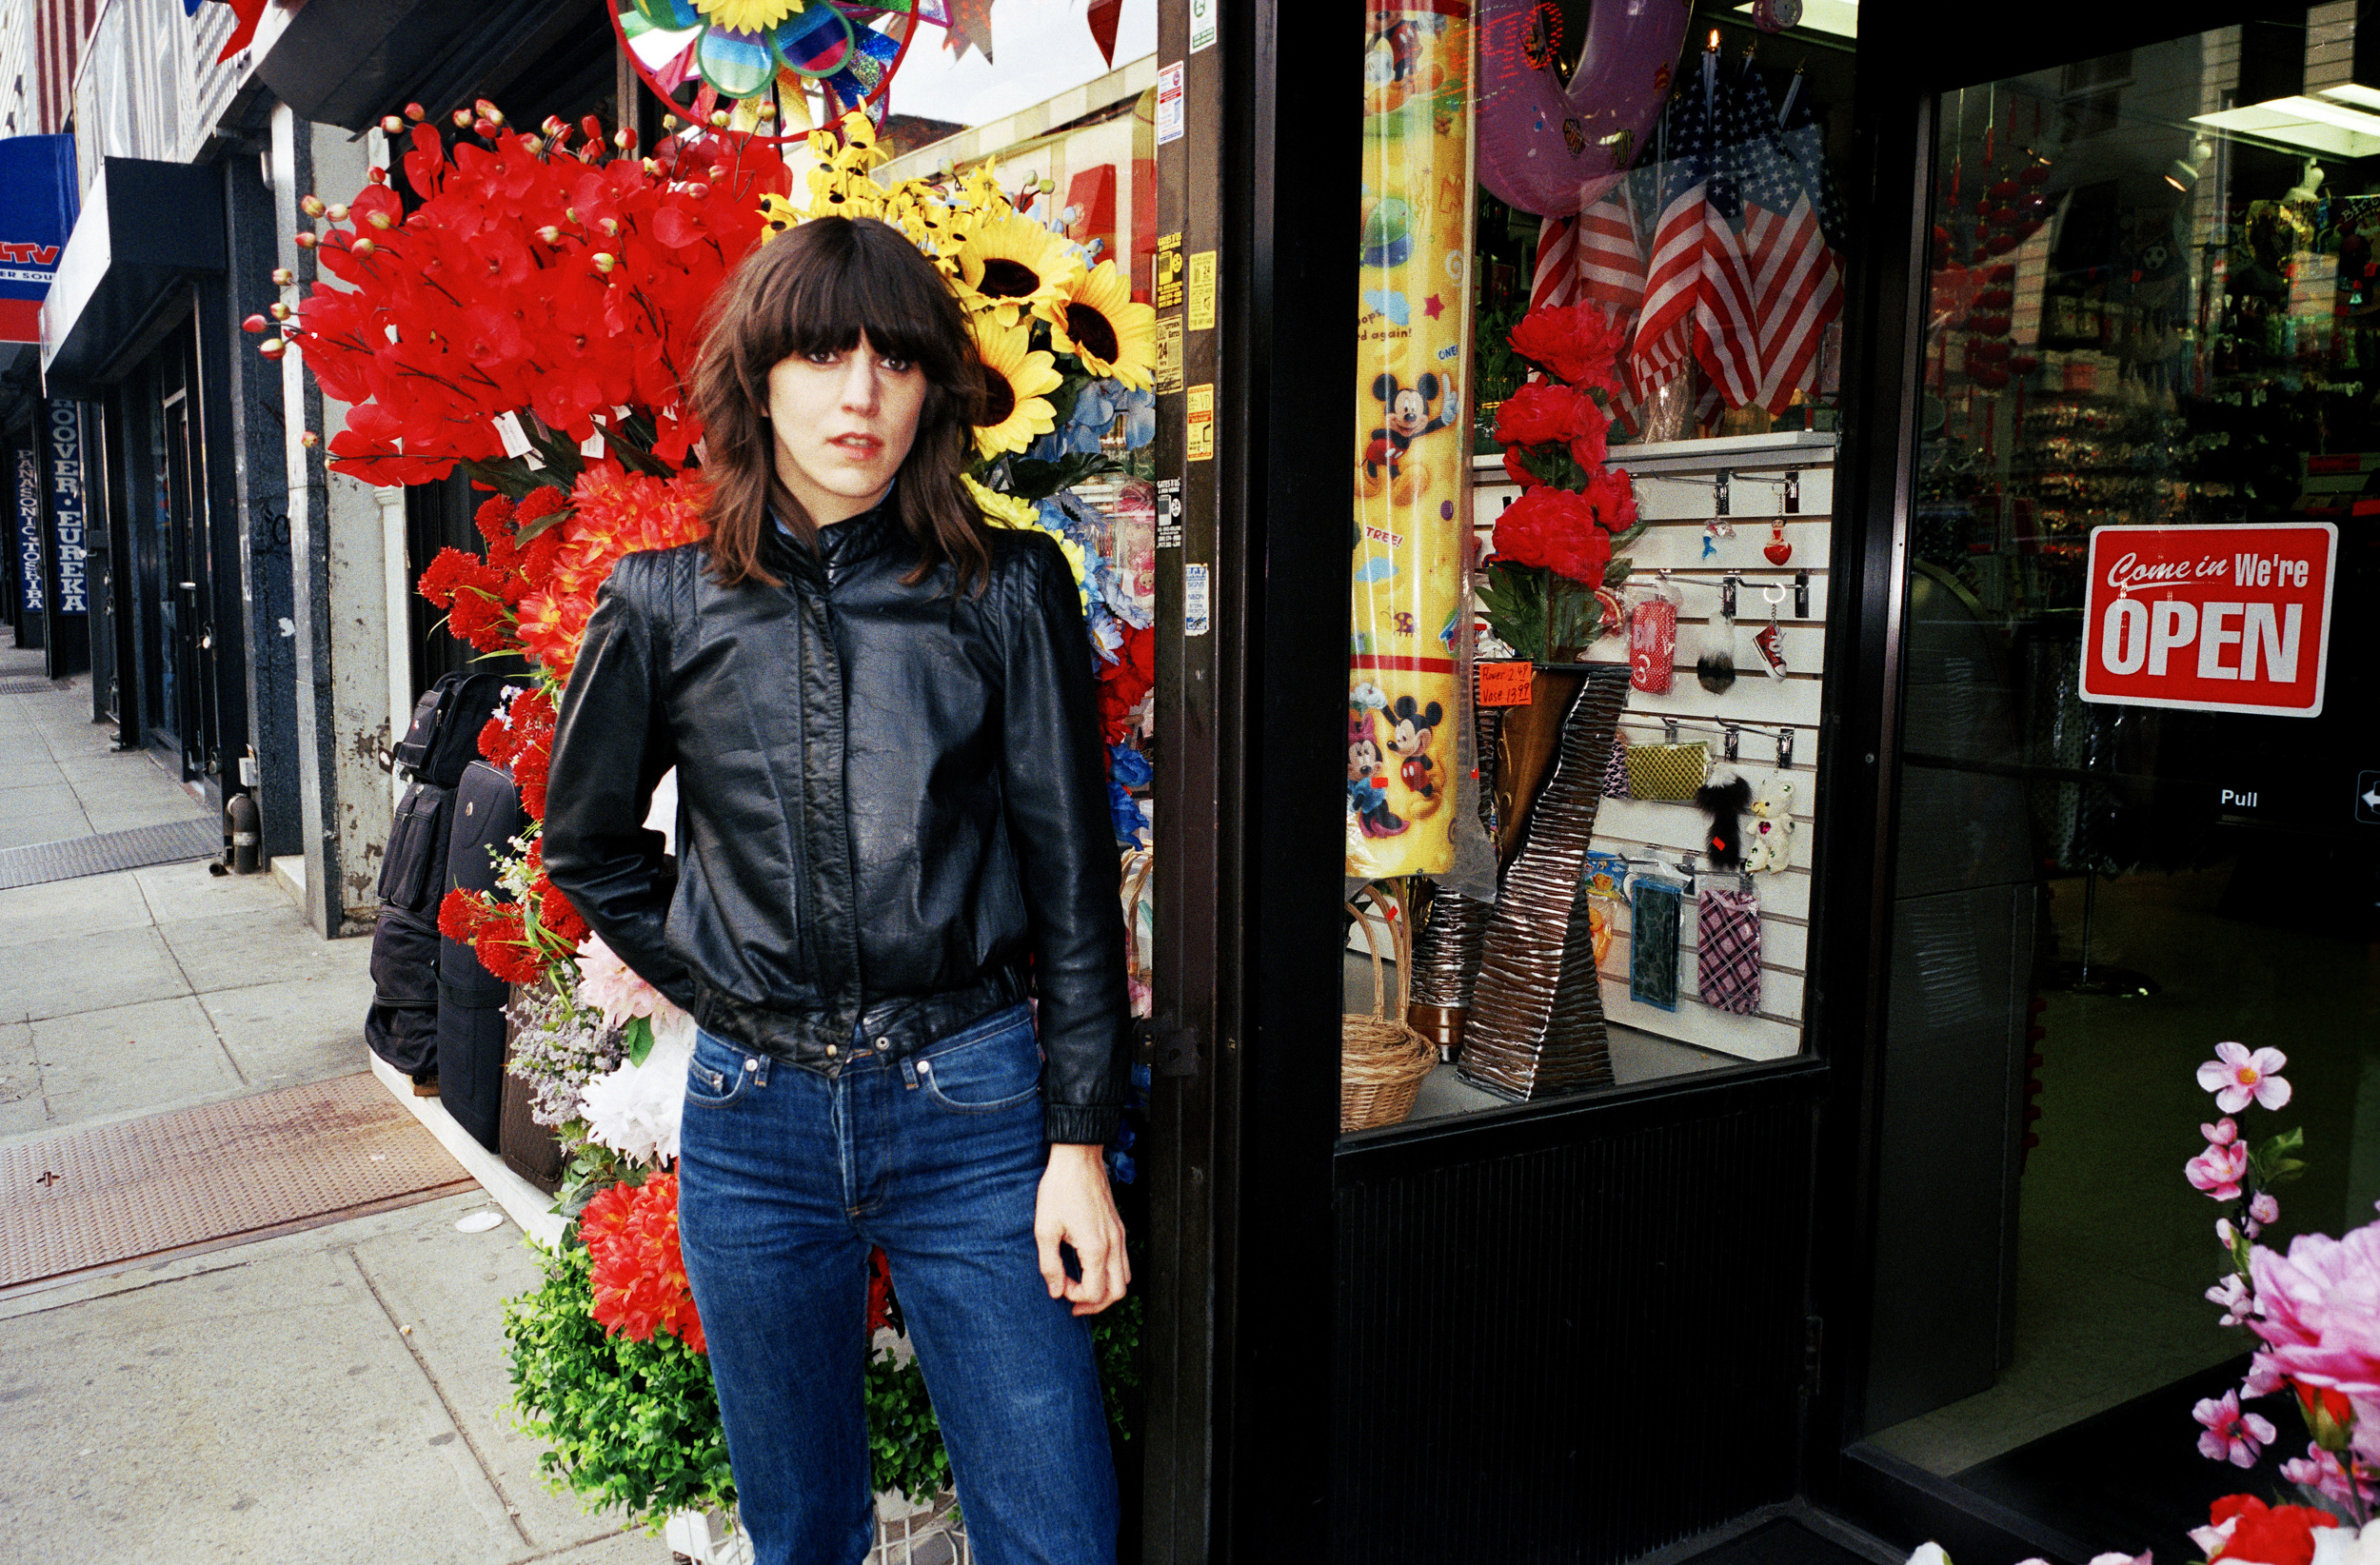 0004_0002_Friedberger_Greenpoint_14